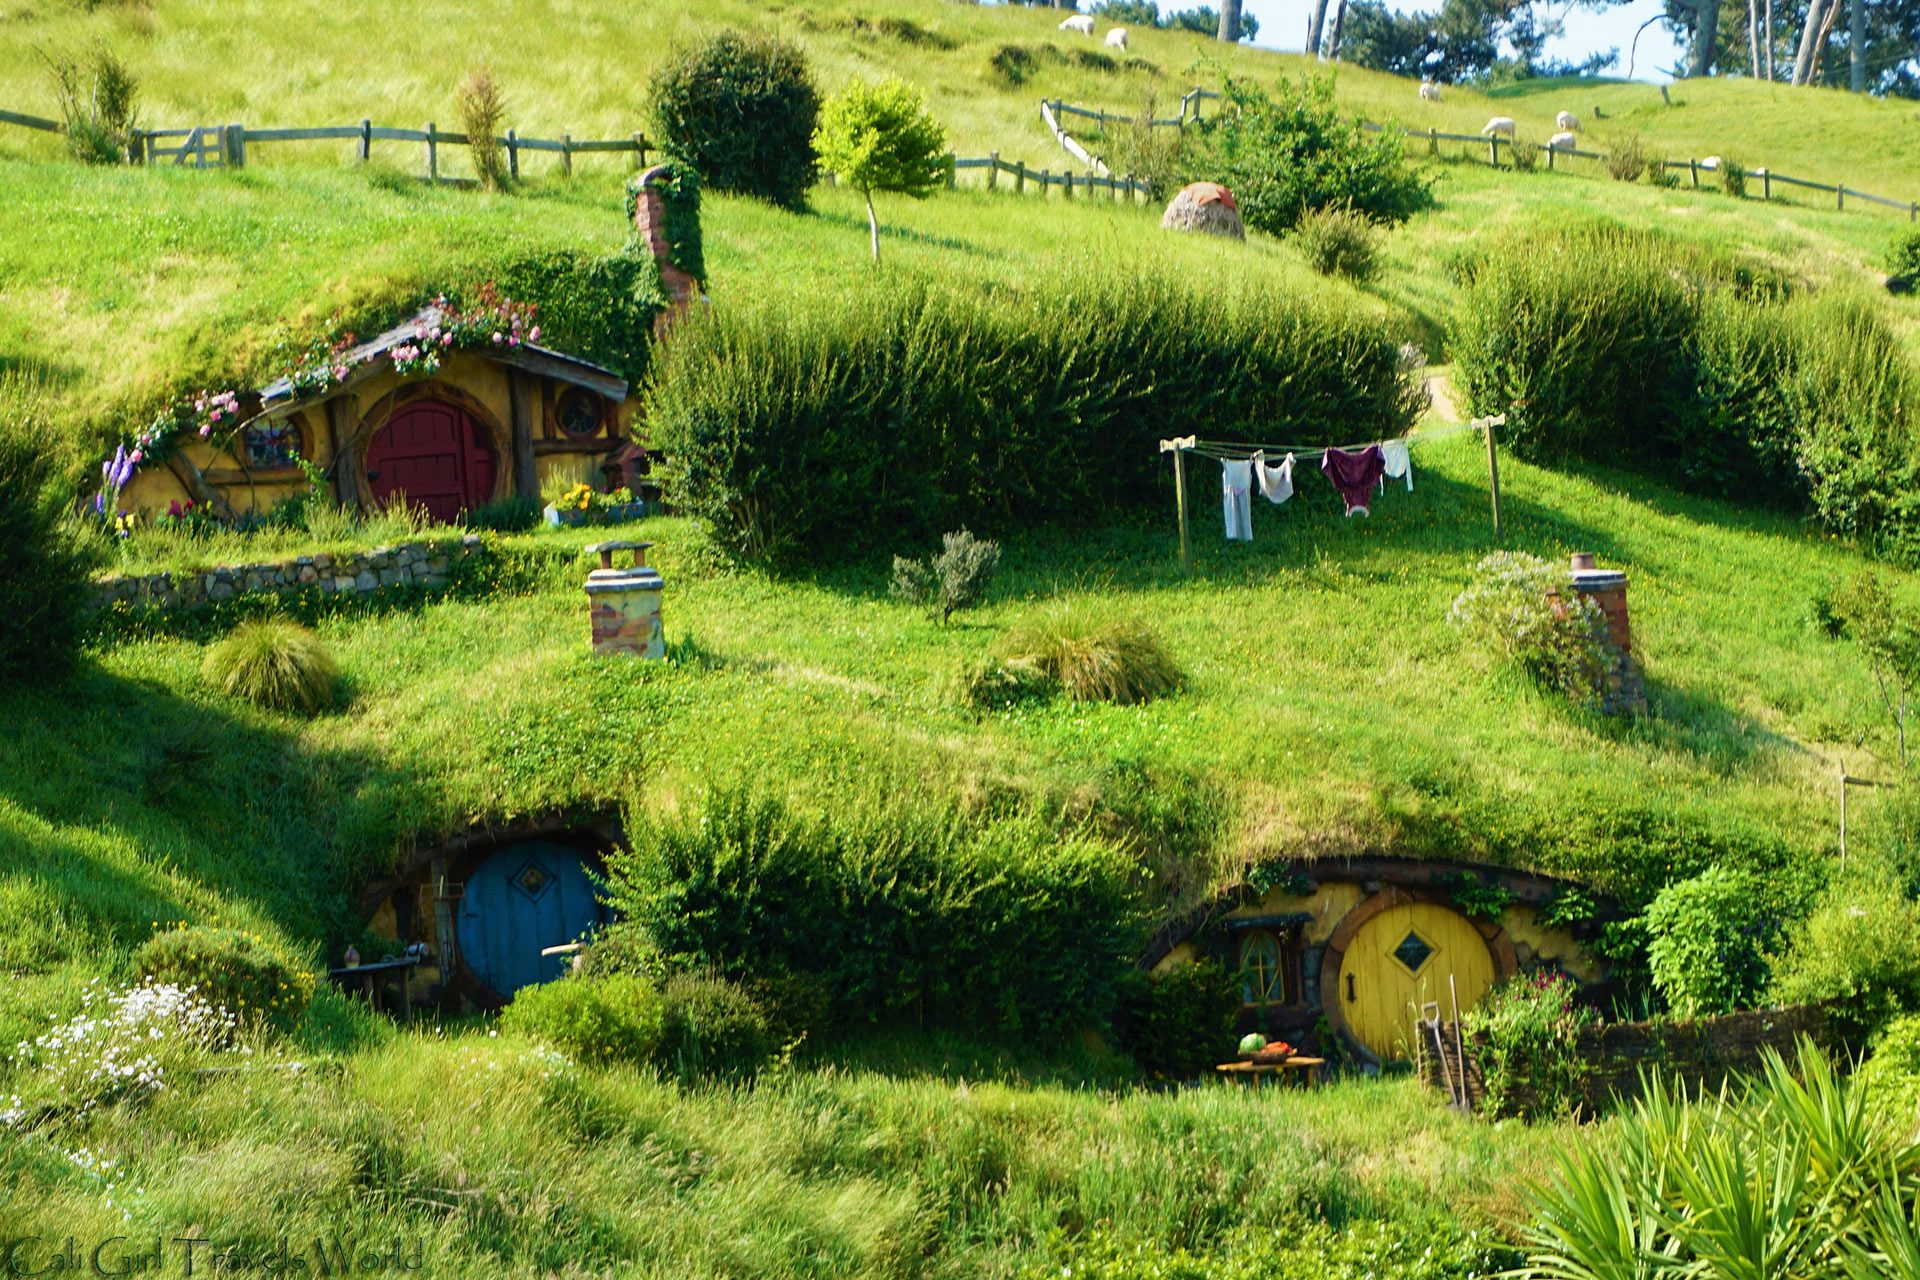 A photo of several hobbit homes in Hobbiton from the film location of Lord of the Rings, Matamata, New Zealand.